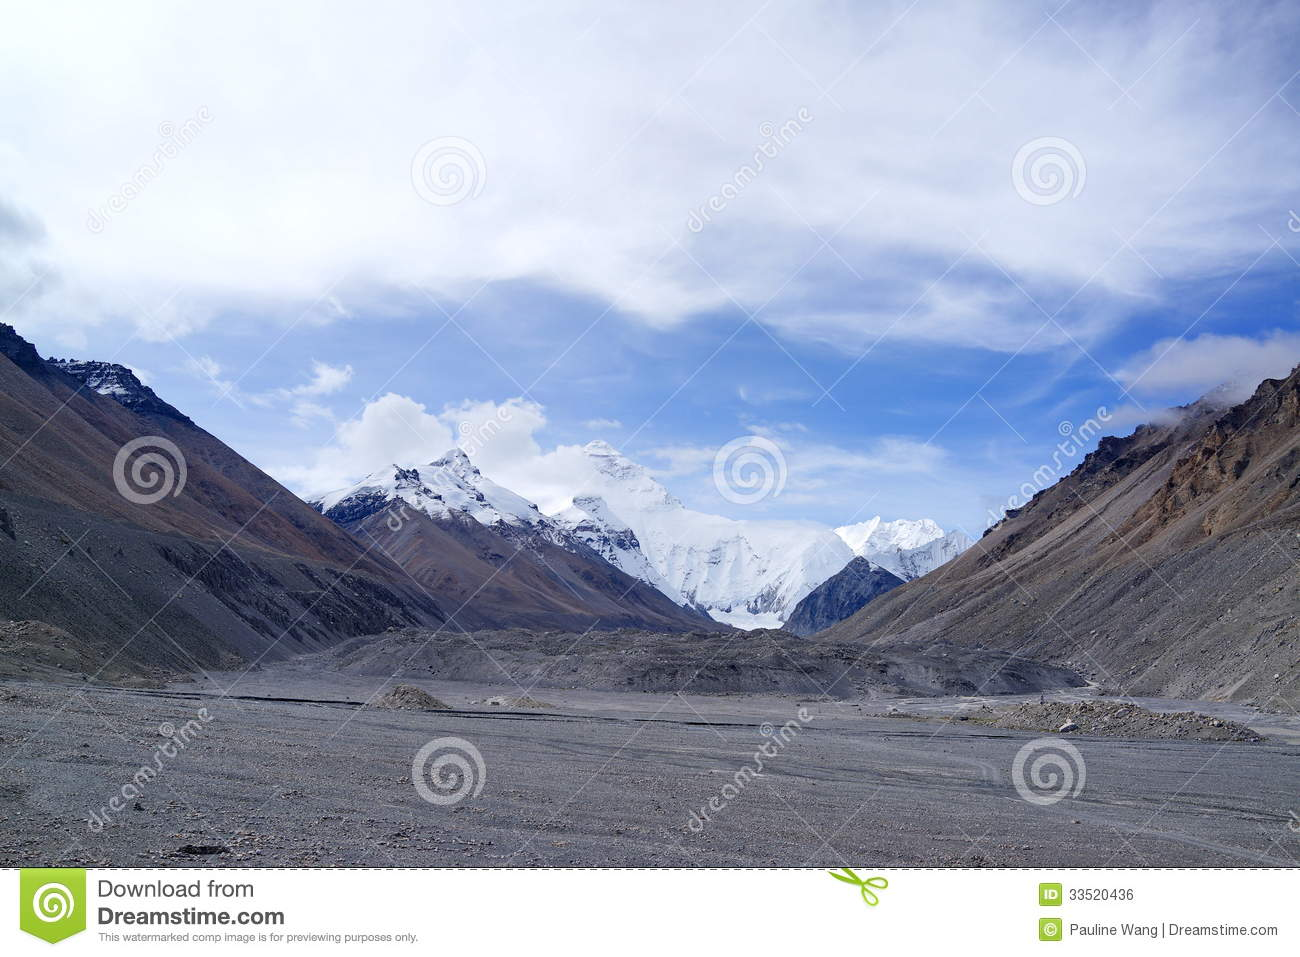 highway to everest mount - photo #10